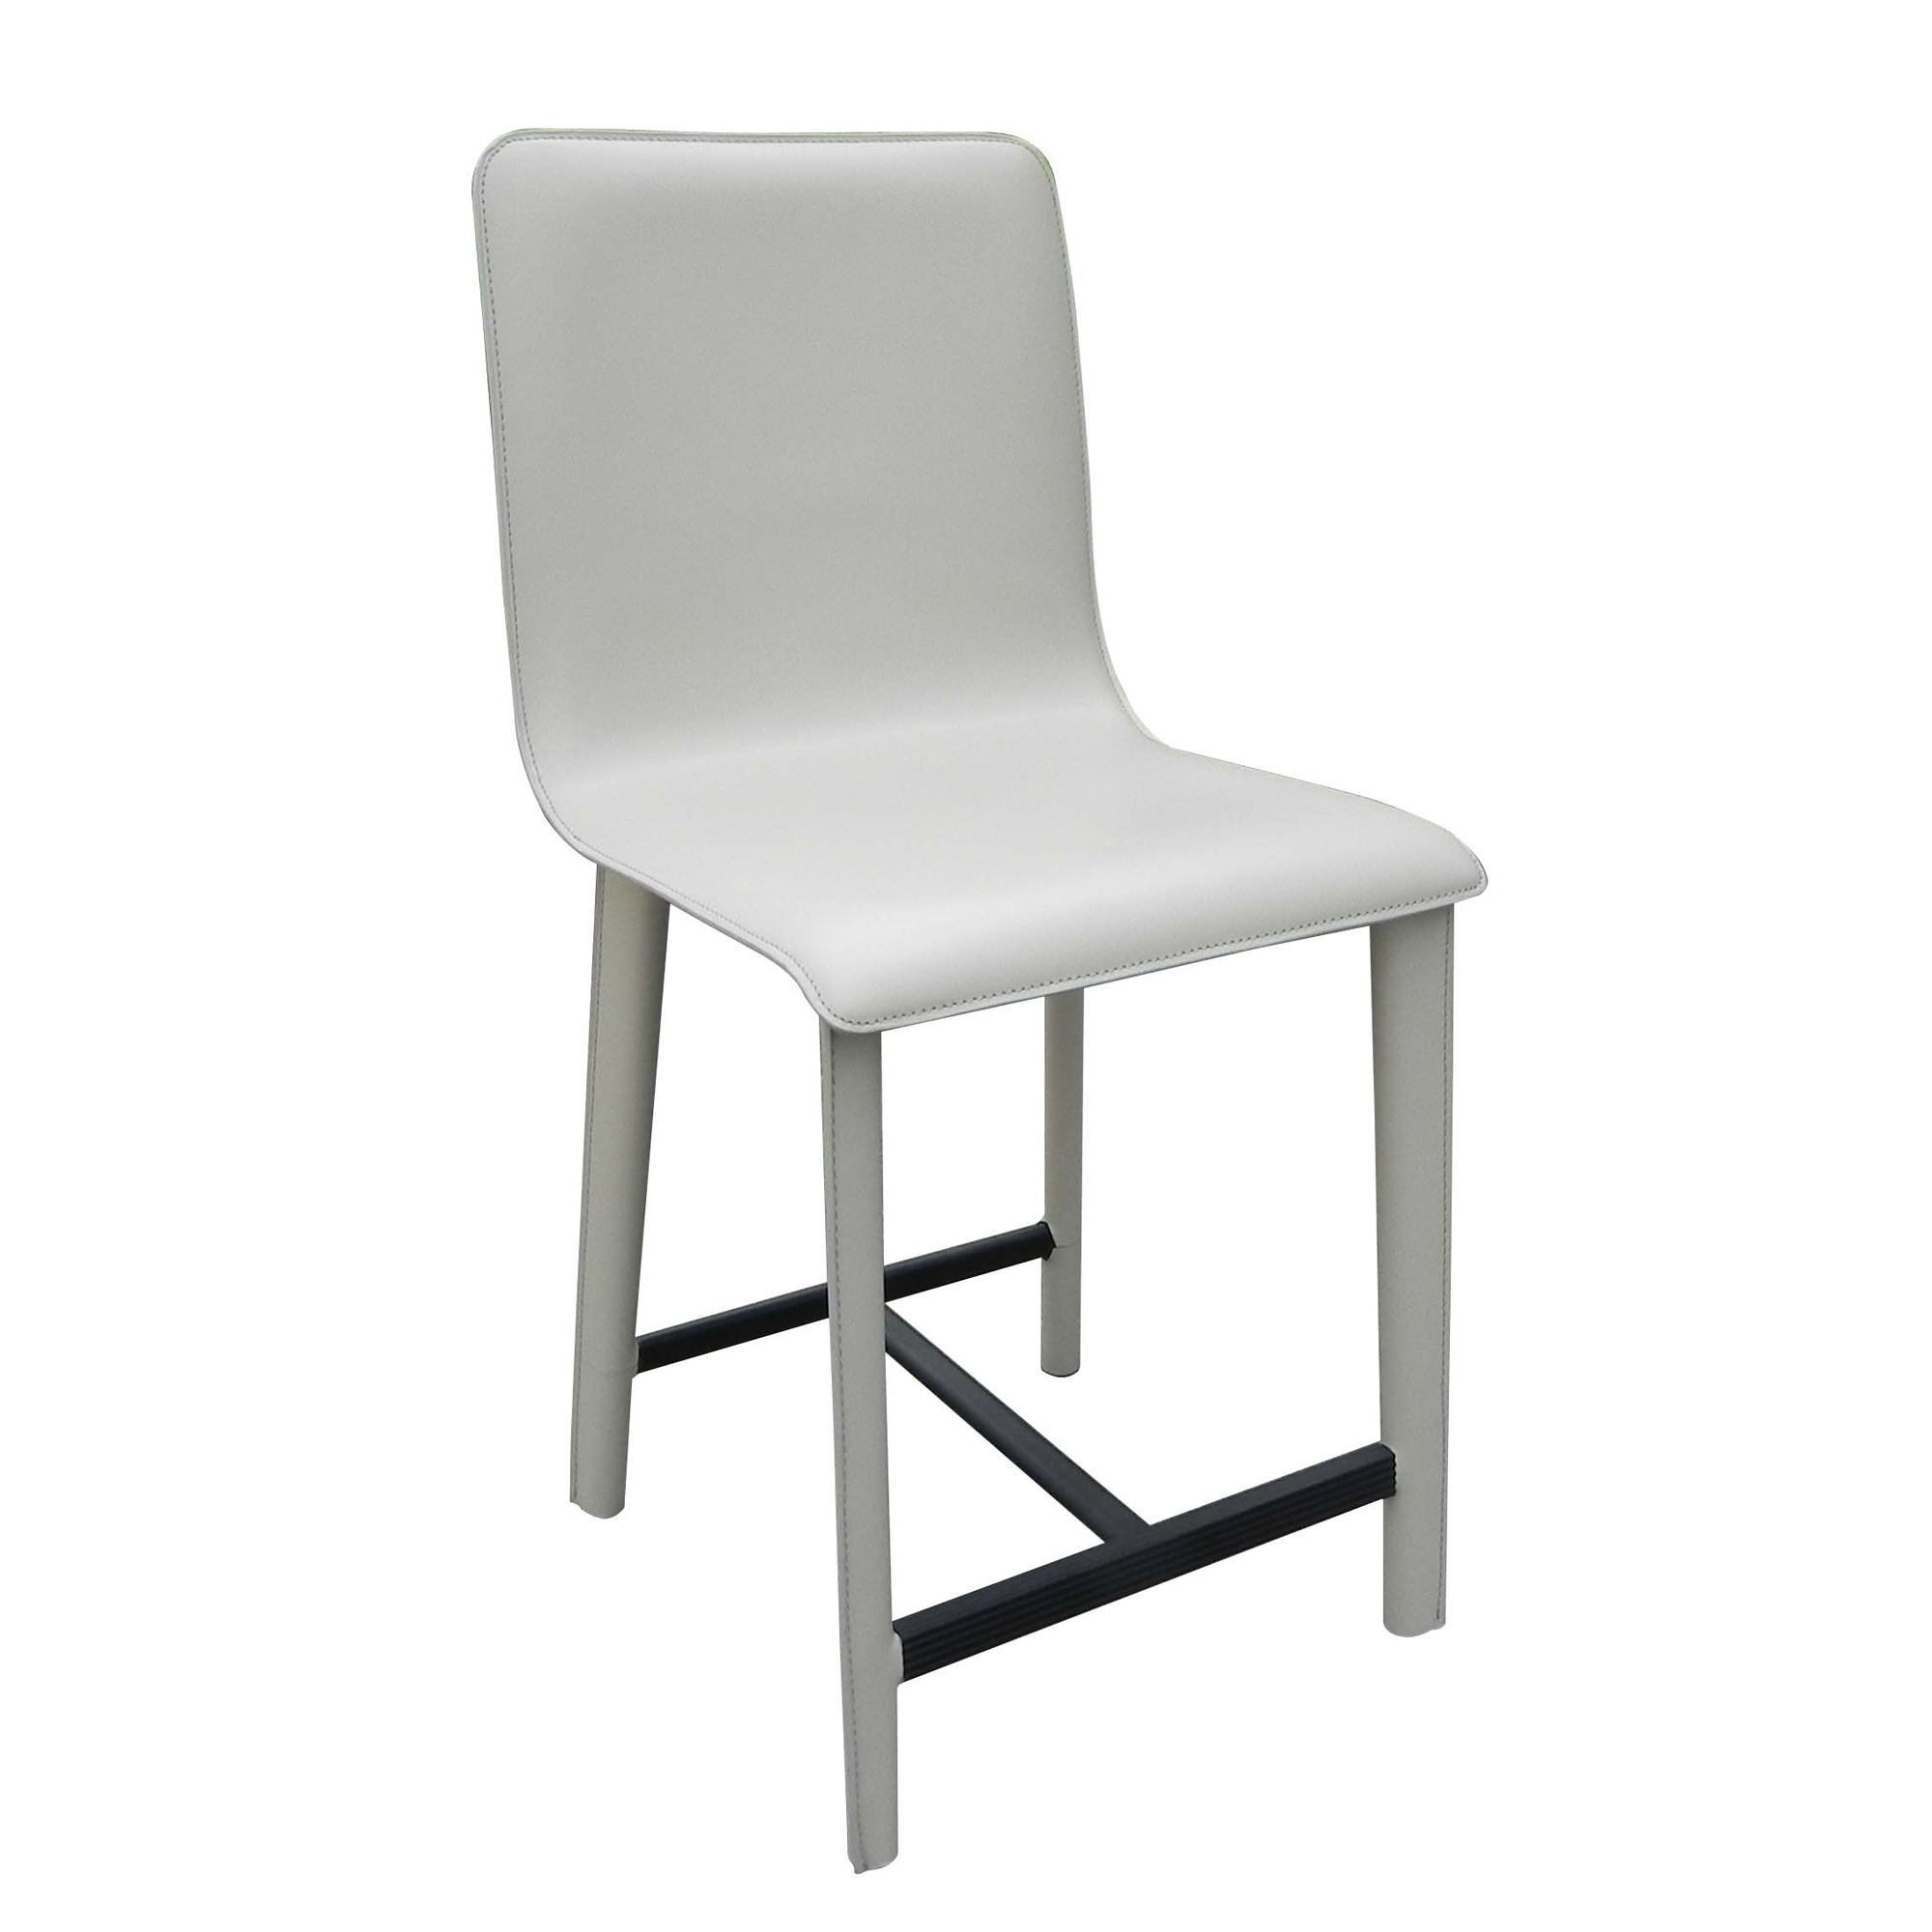 Maria Yee Perugia Counter Stool